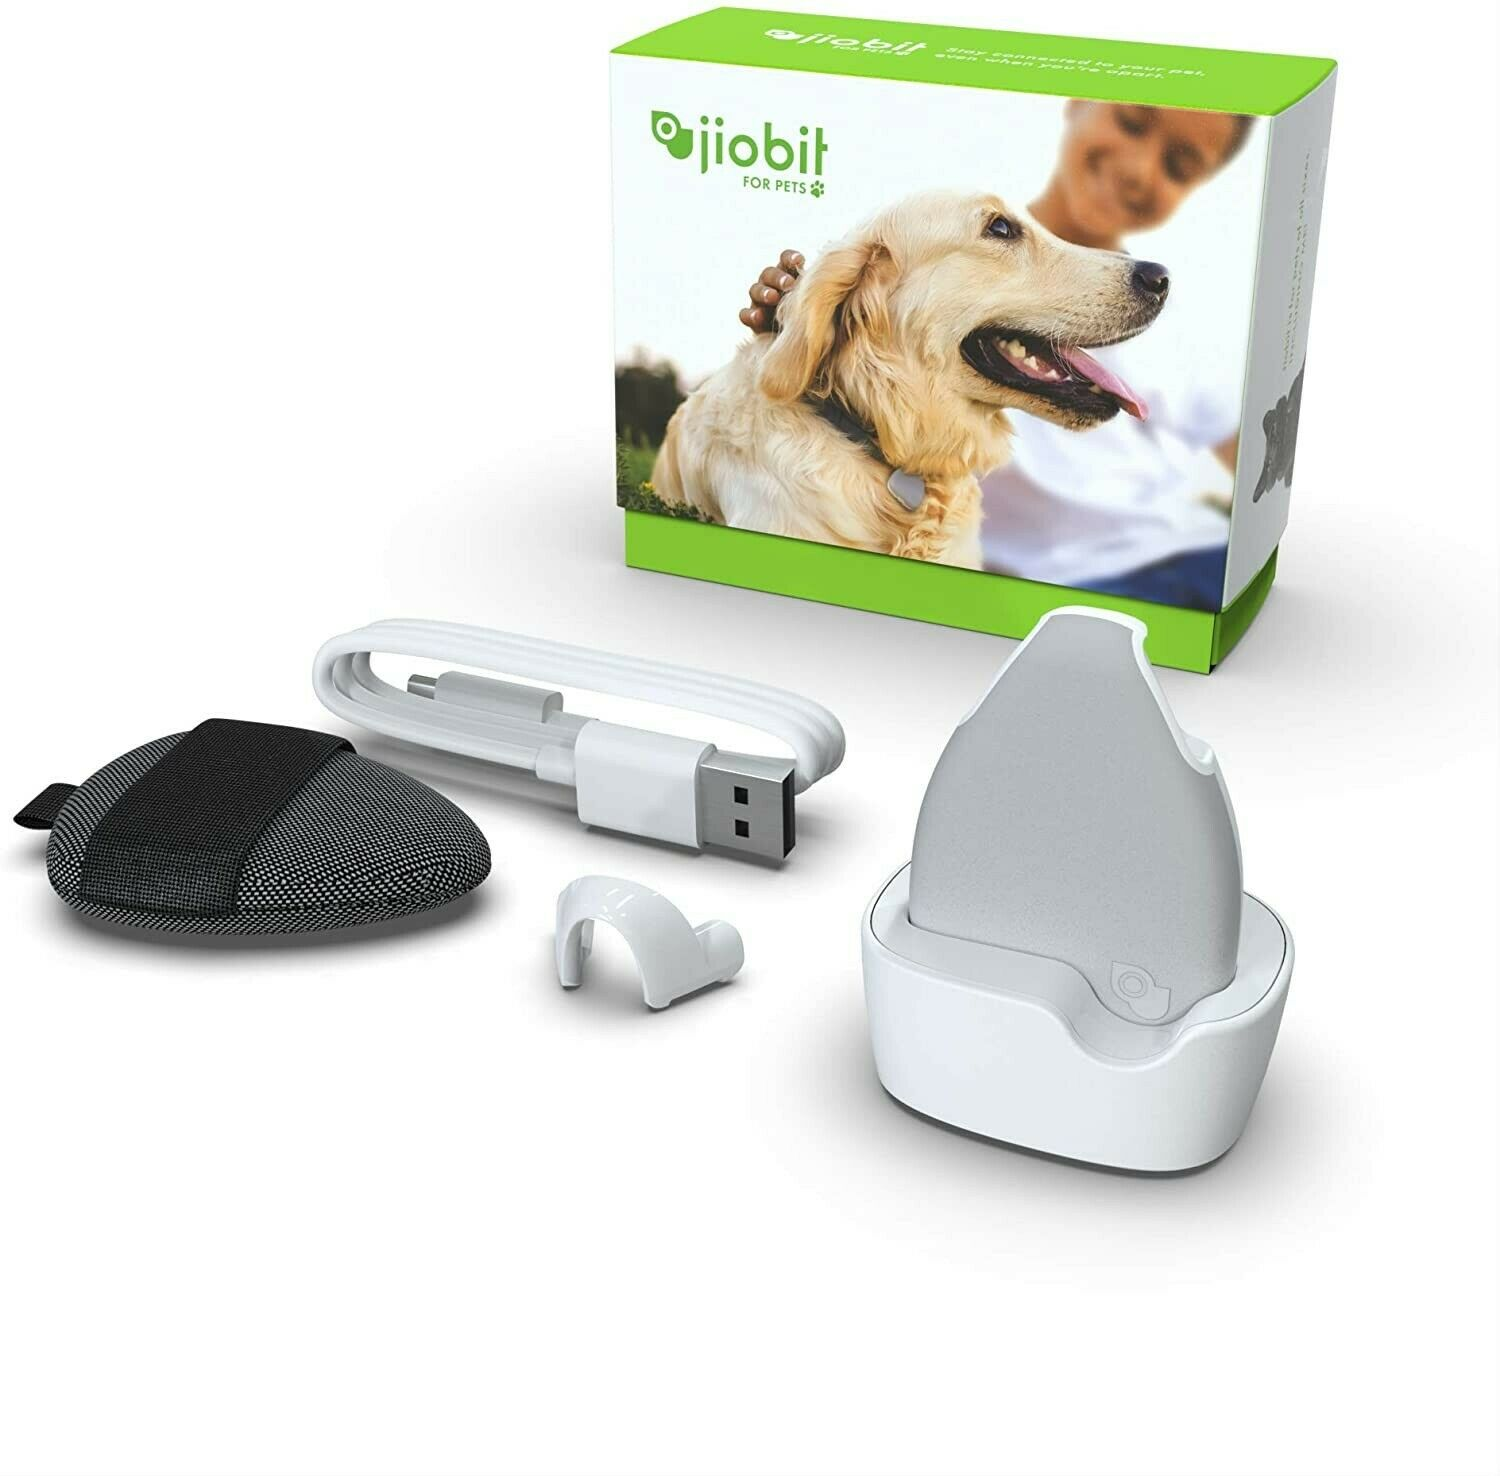 Jiobit Pet/Child Tracker - Live Location Monitoring For Dogs And Cats Of Any...  - $75.00